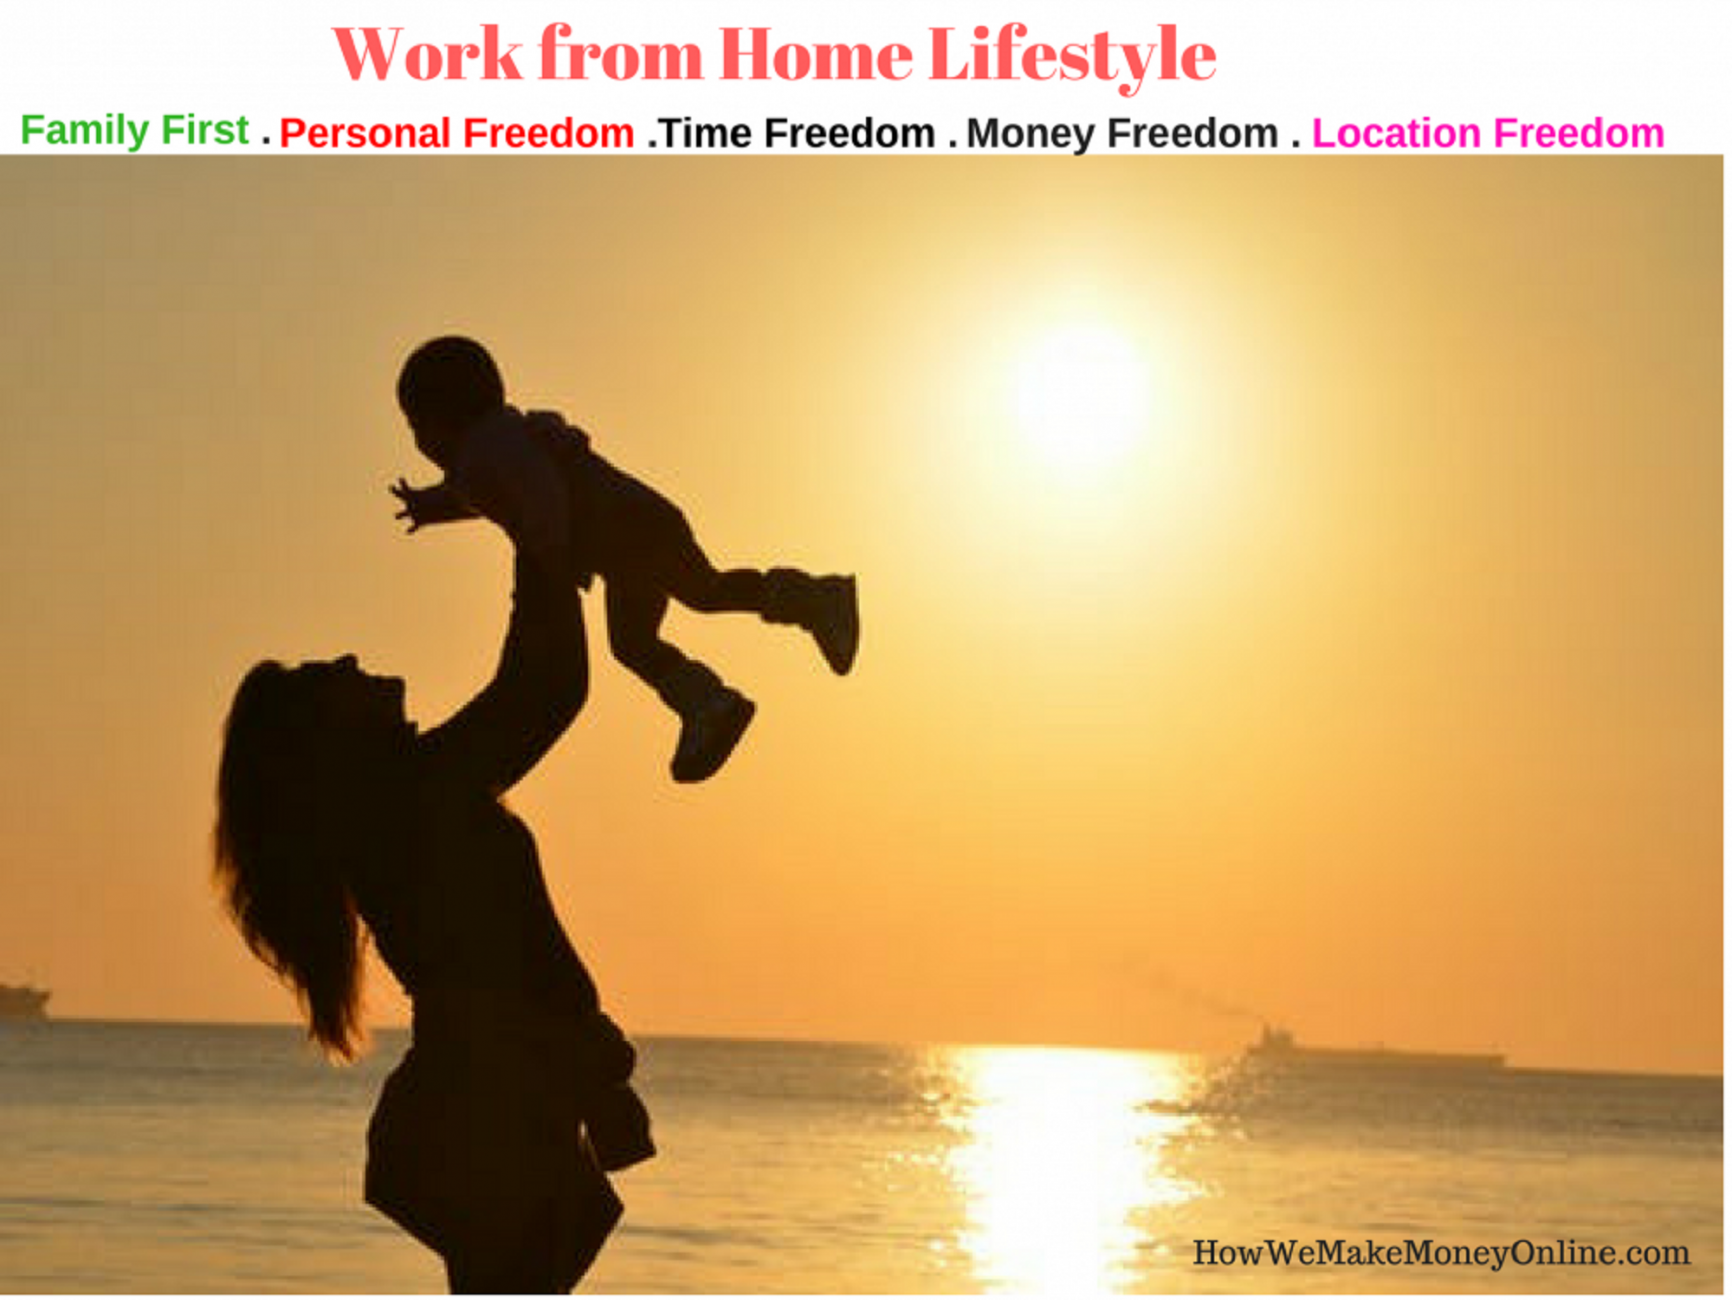 11 Best Entry Level Work-at-Home Jobs for Stay-at-Home Moms